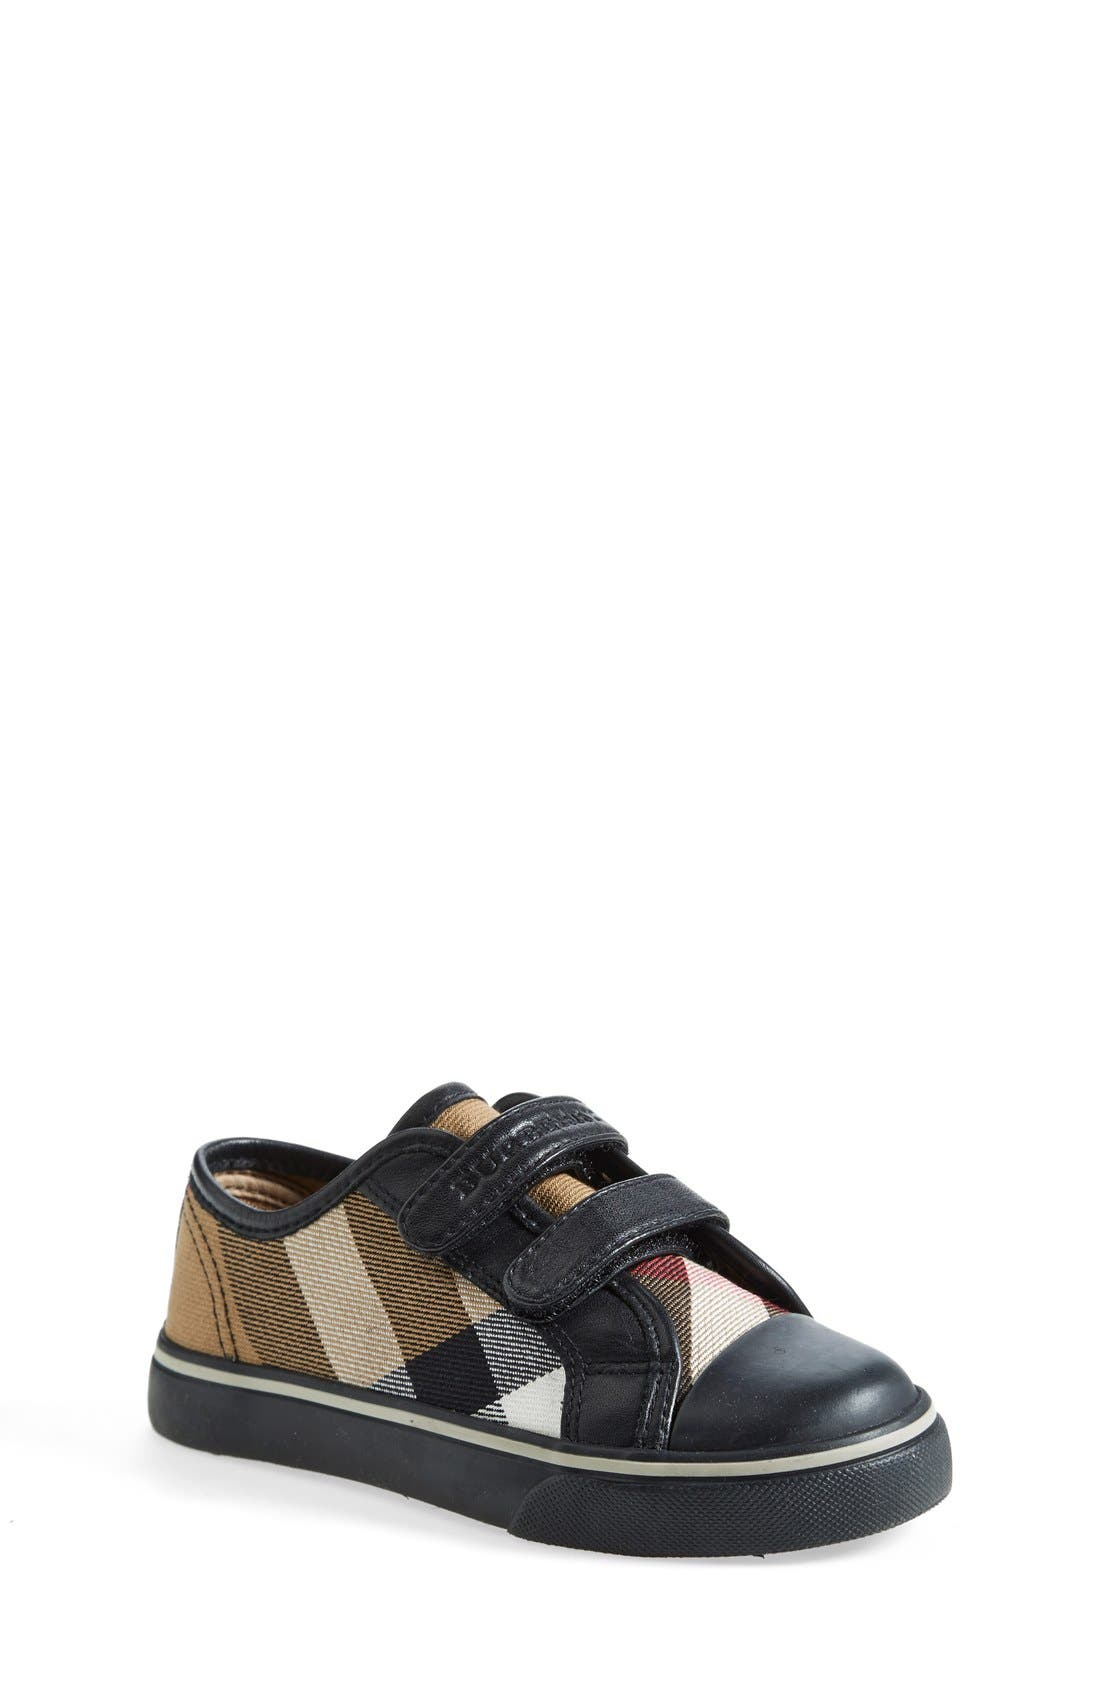 Main Image - Burberry 'Pete' Sneaker (Baby, Walker, Toddler &  Little Kid)